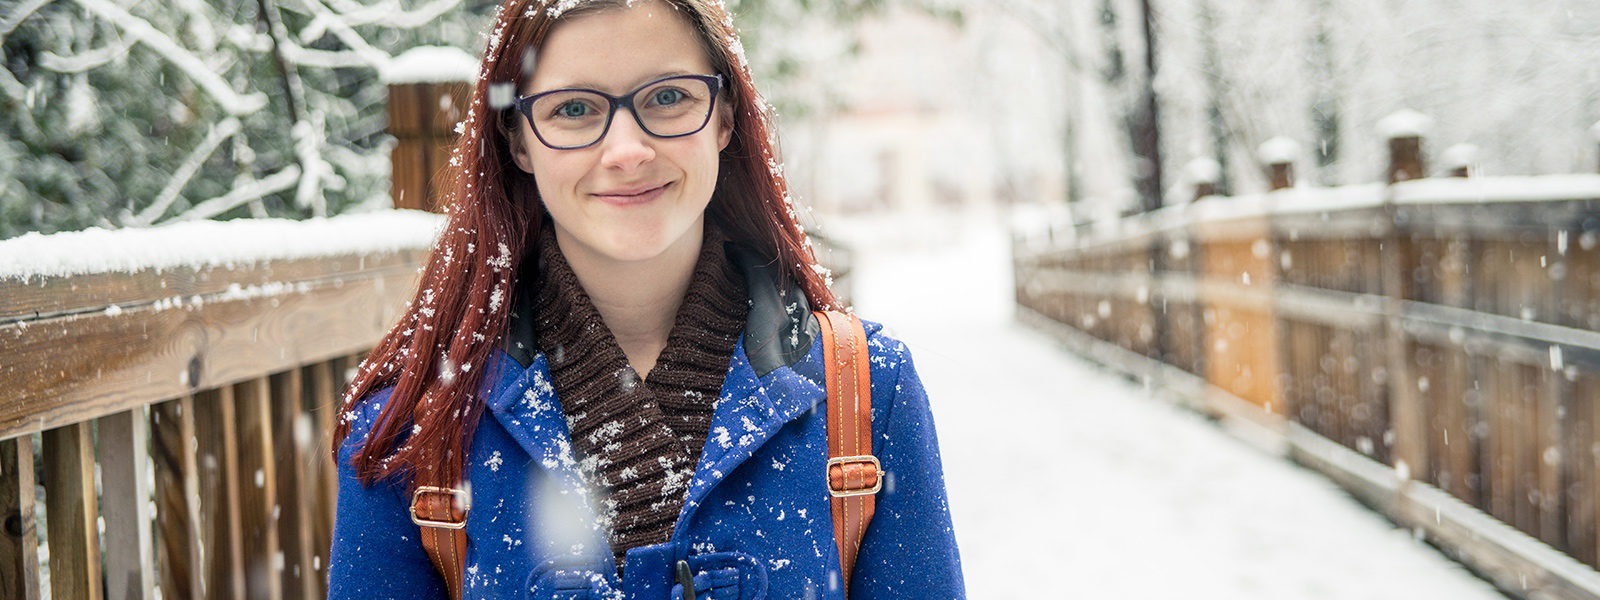 Northland College student in the snow